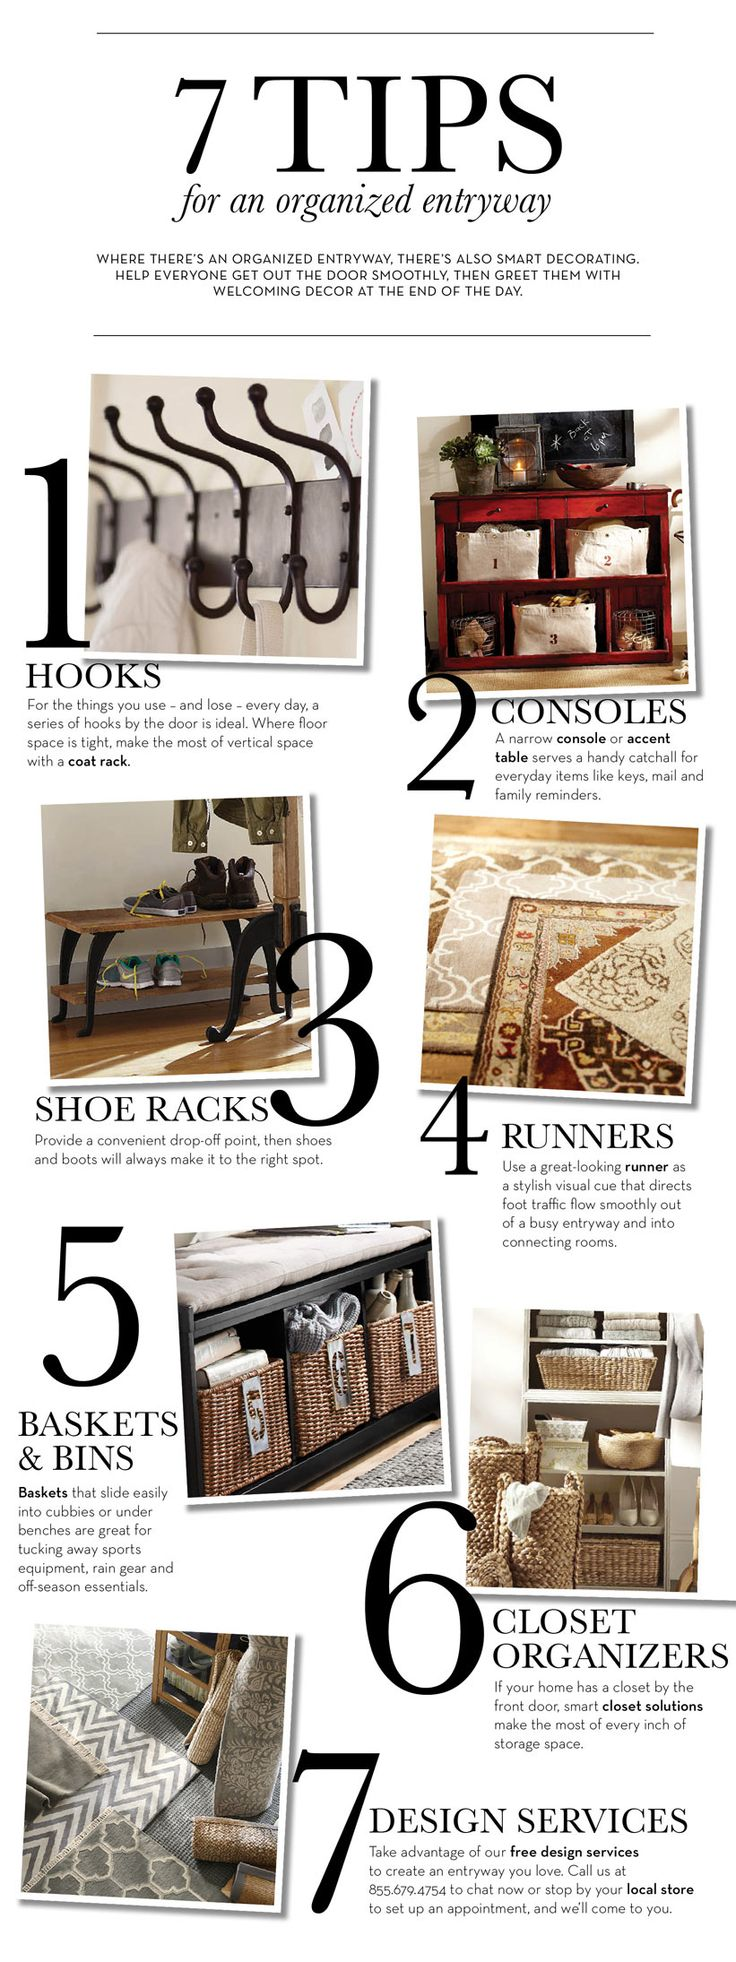 7 Tips for an Organized Entryway